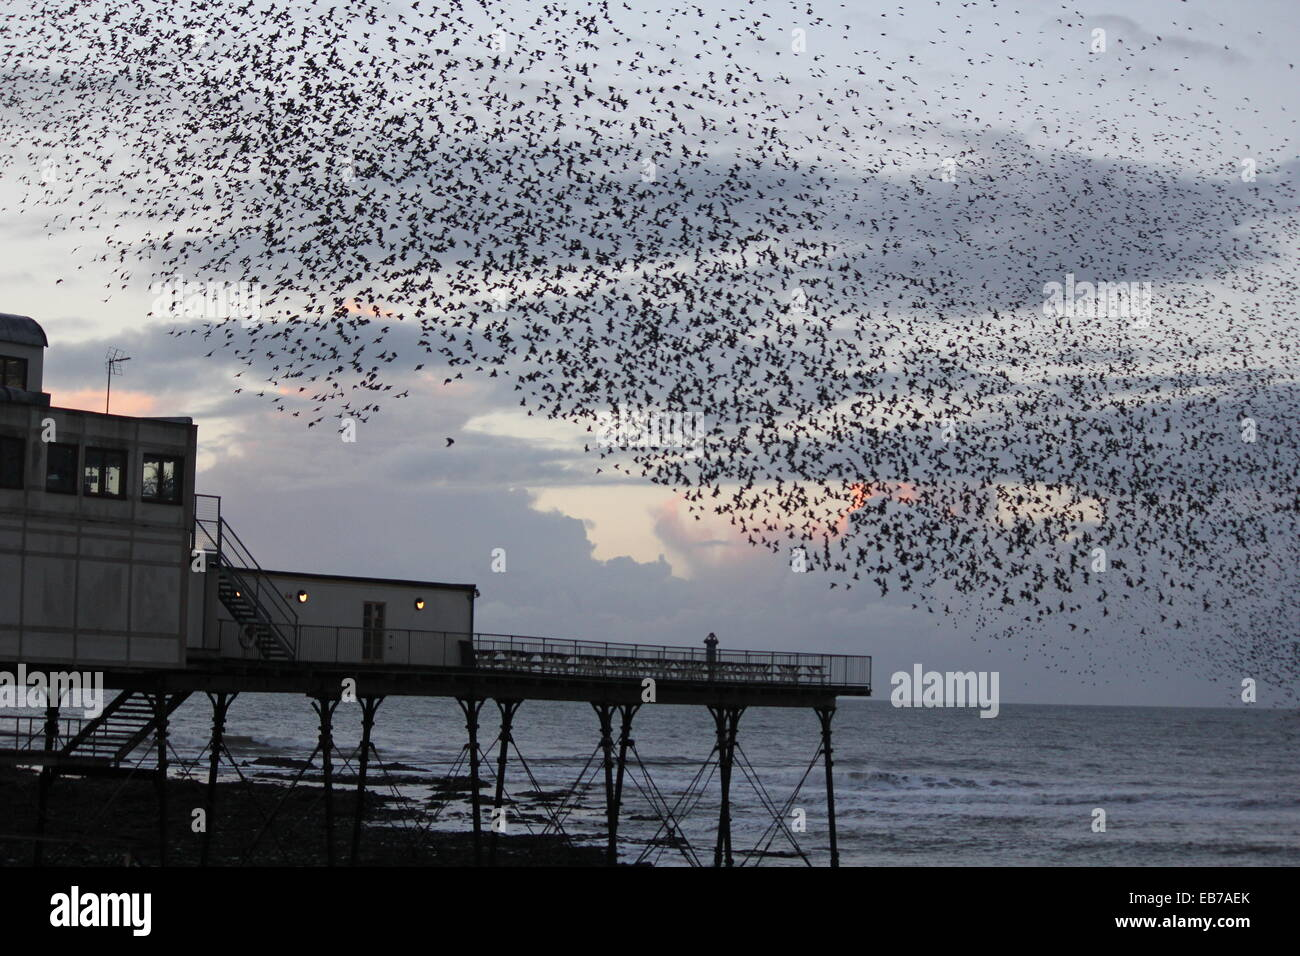 Aberystwyth Wales. A murmurtion of starlings return to roost on the pier st sundown. - Stock Image